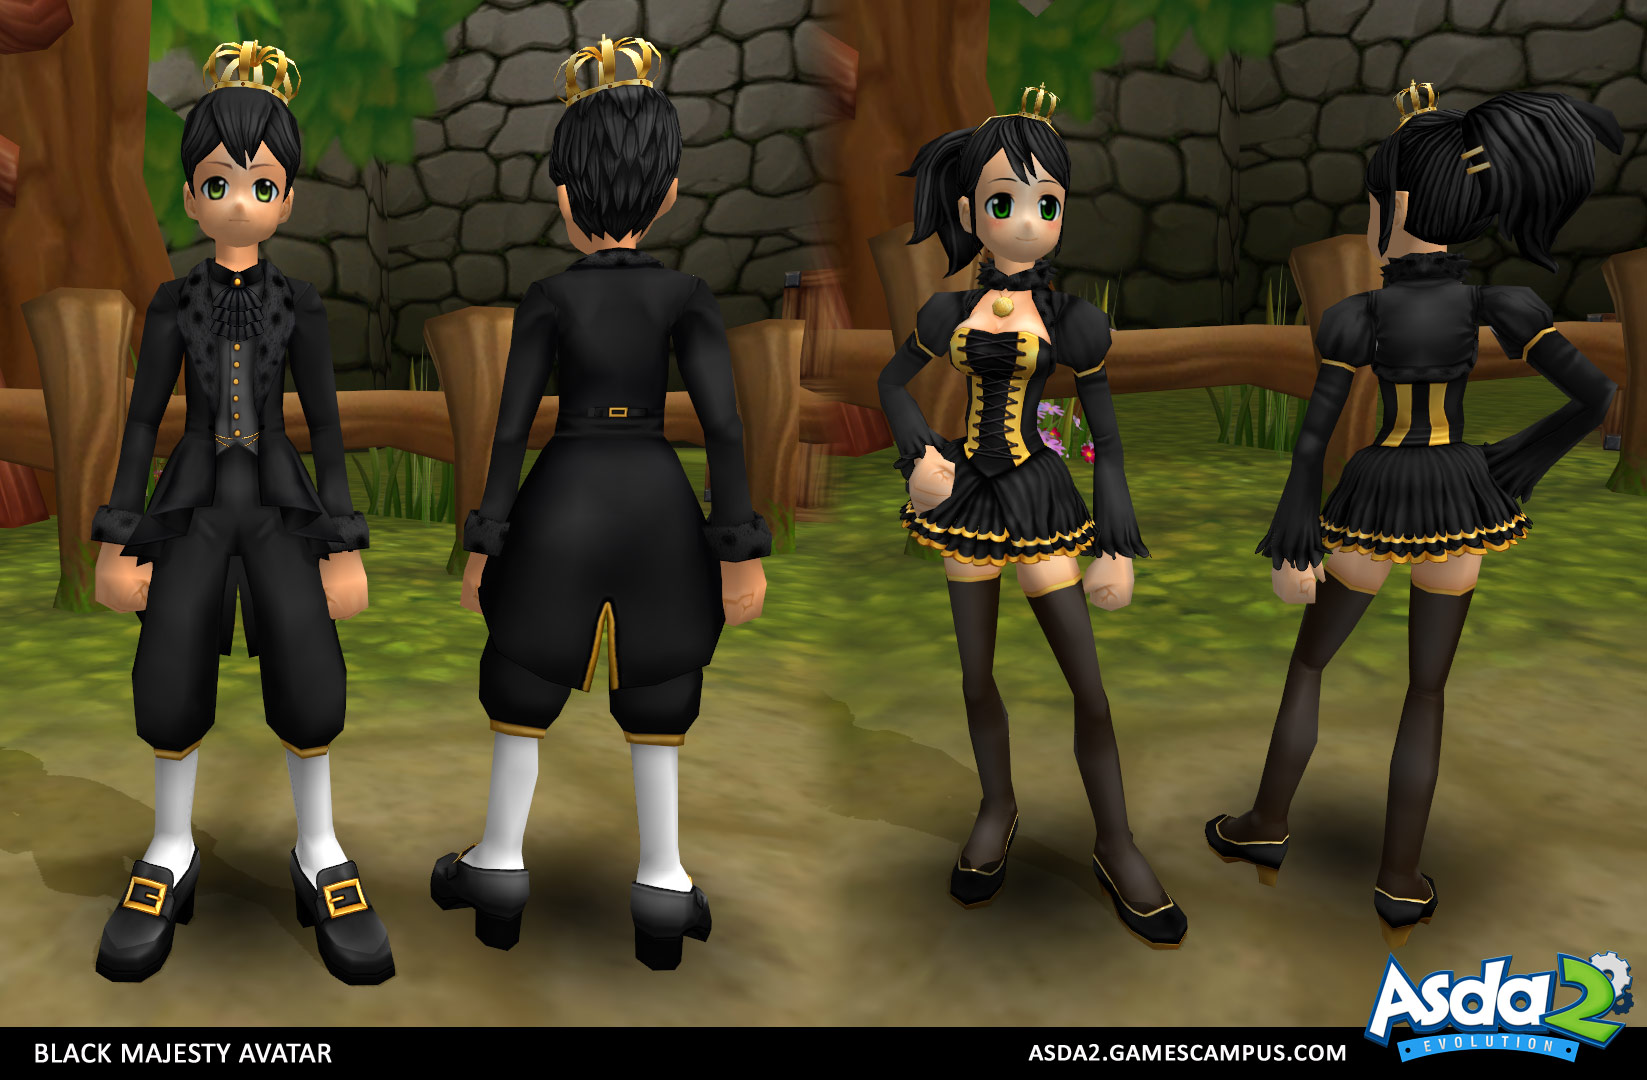 Best Anime MMORPG - Asda 2 - Black Majesty Set